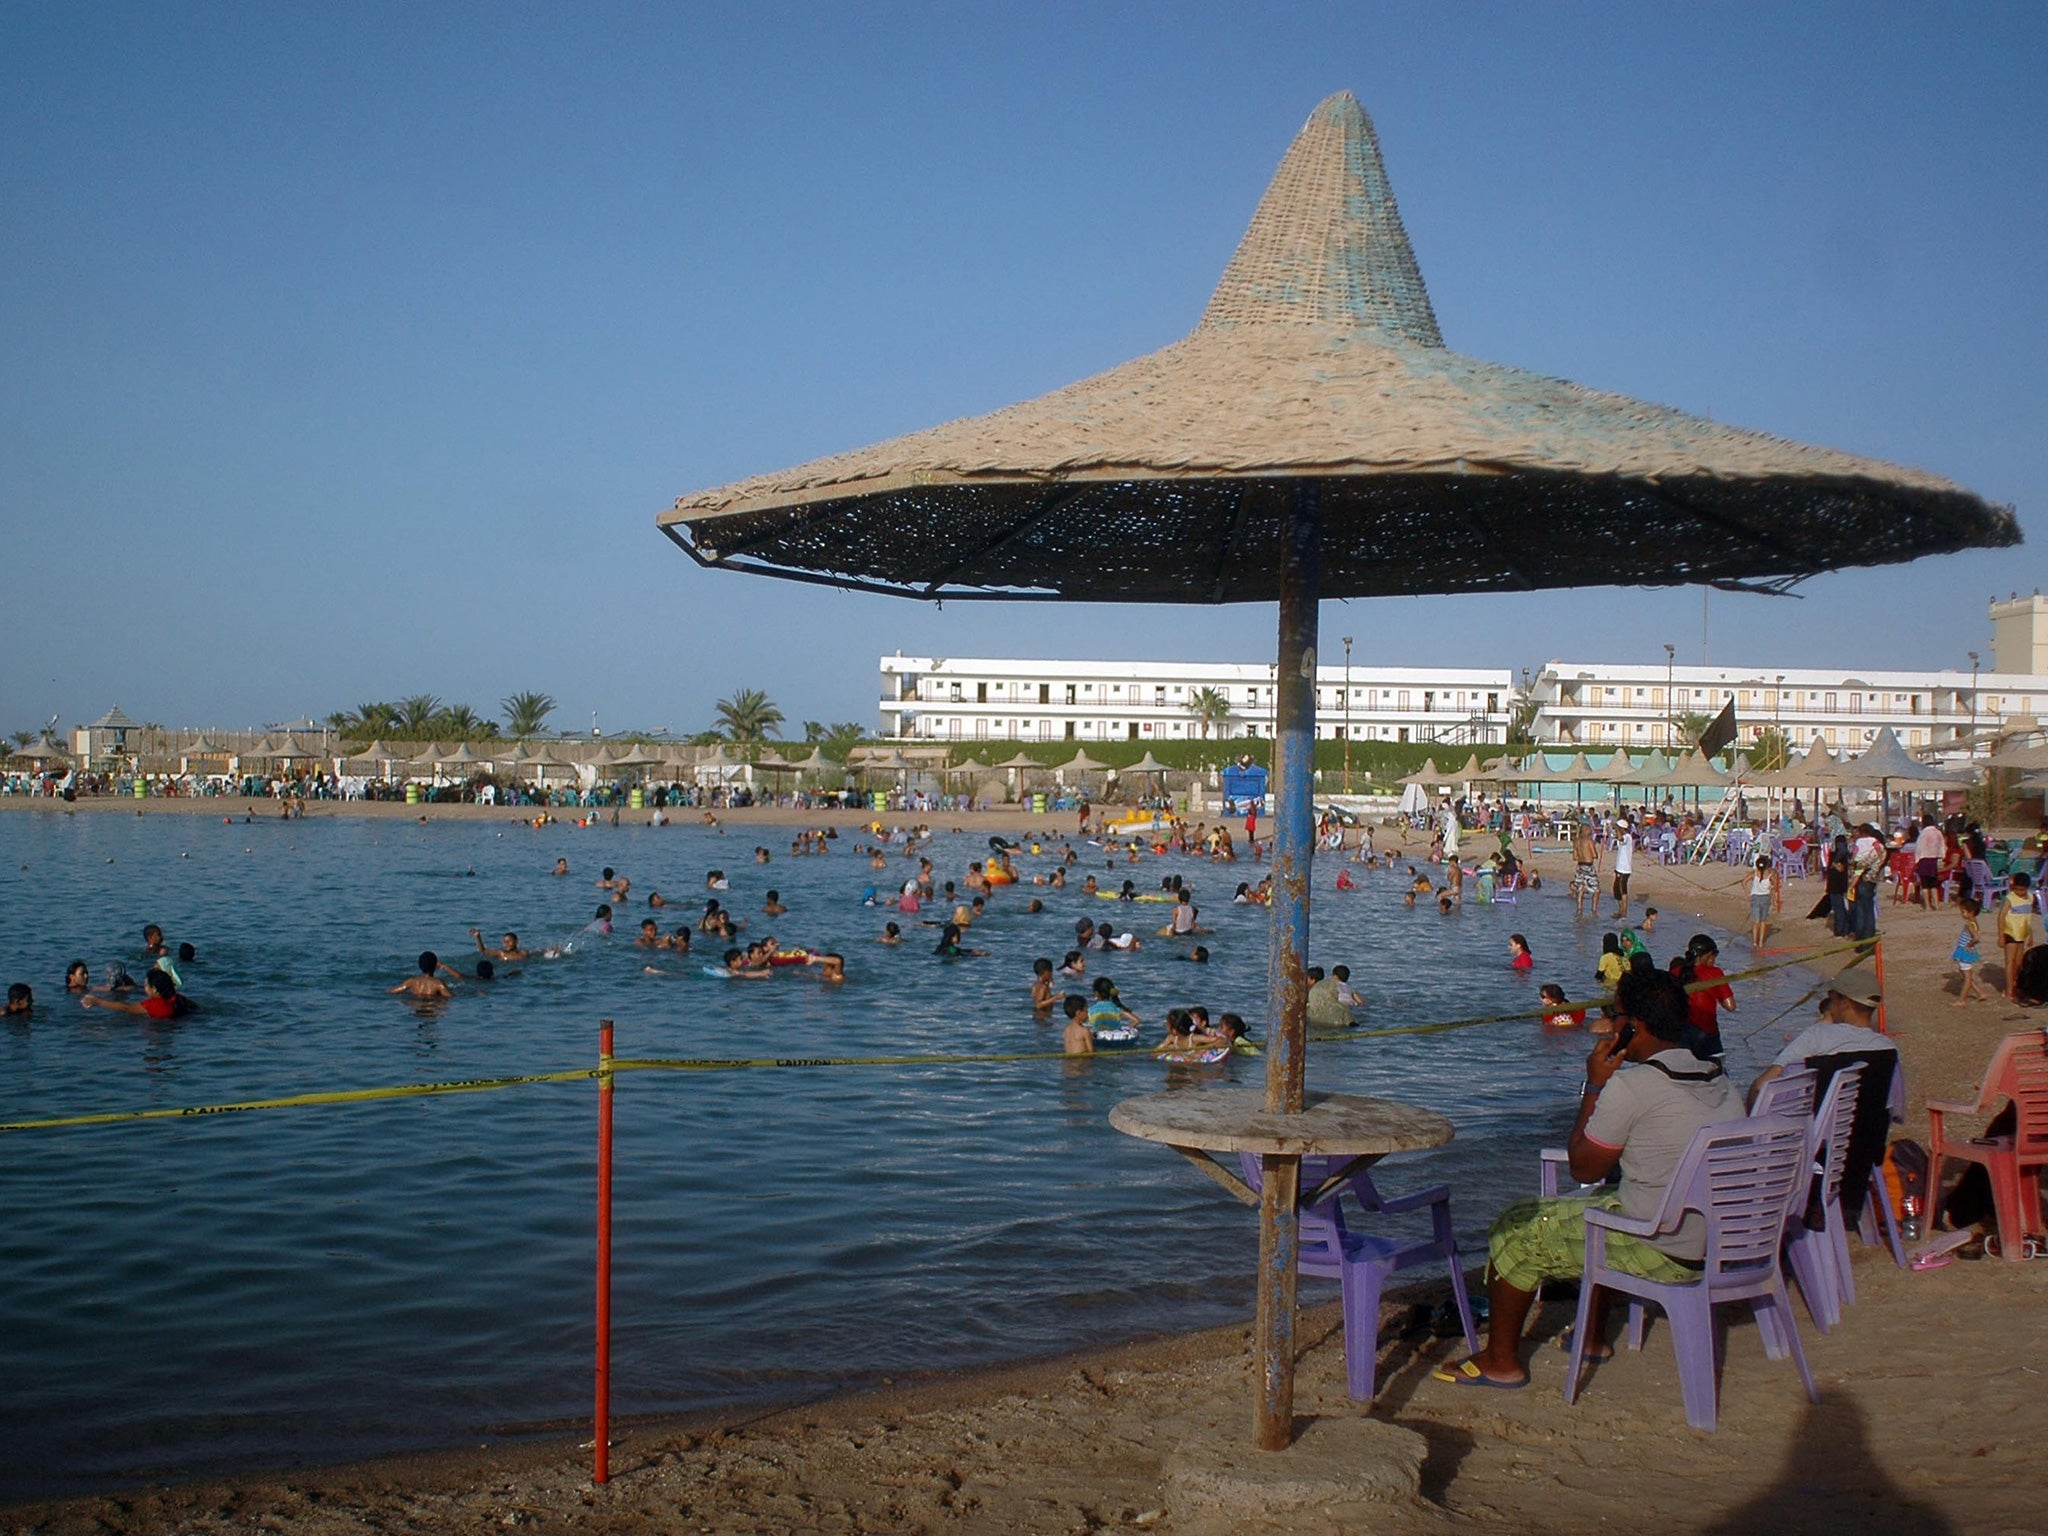 Hurghada or Sharm El Sheikh - which resort is better to choose for recreation